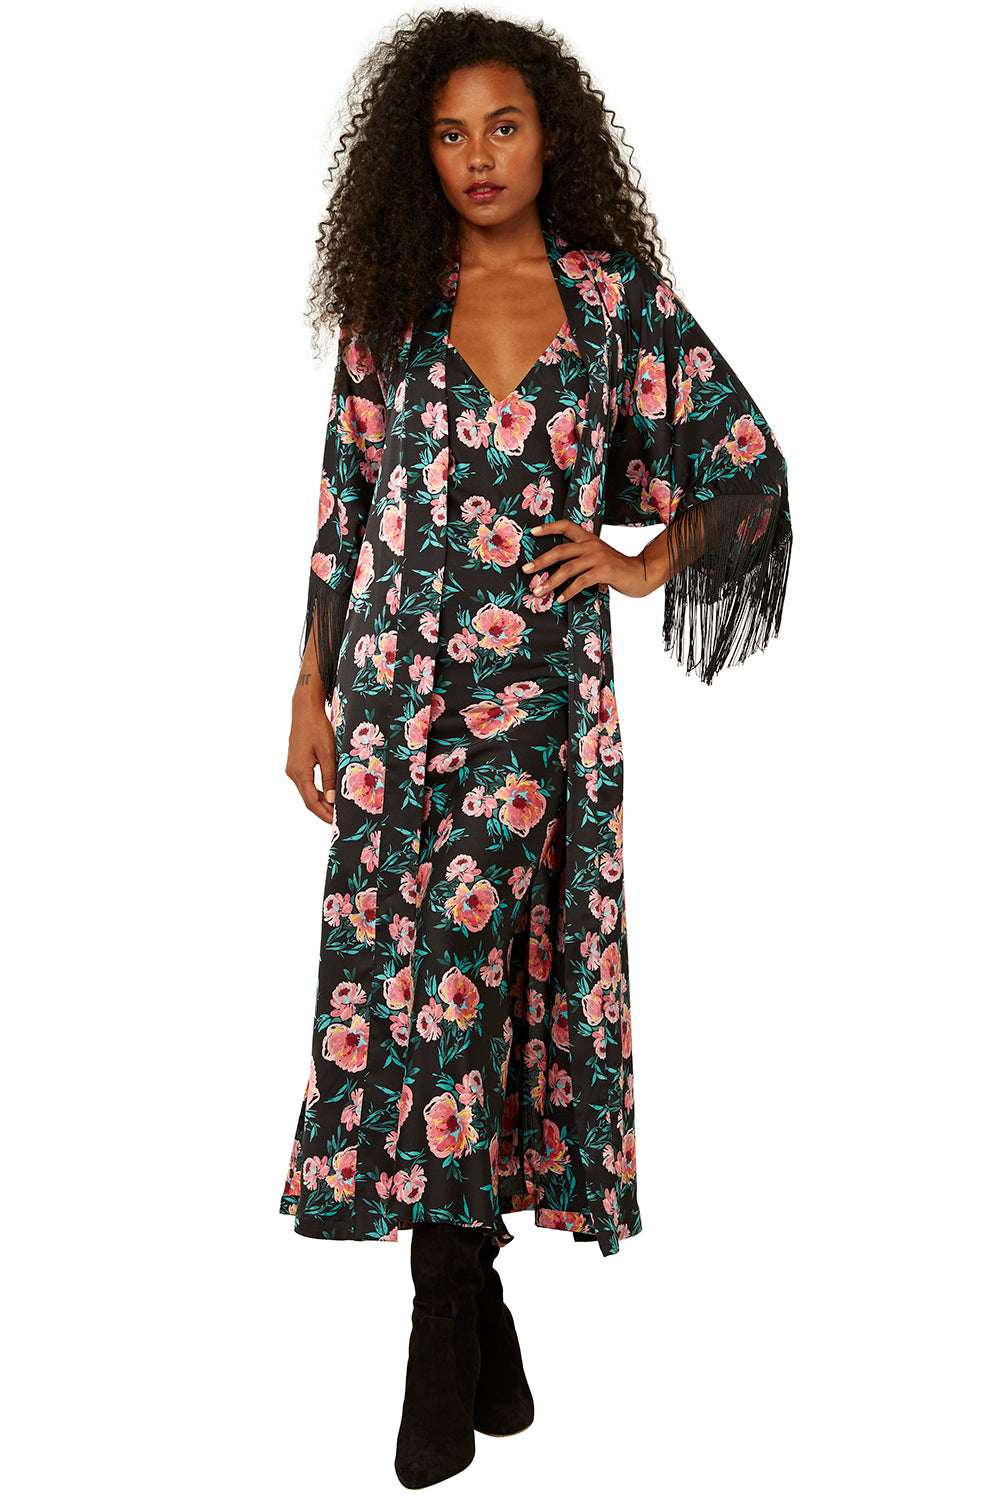 ZEENIA ROBE - ONLINE EXCLUSIVE - MISA Los Angeles